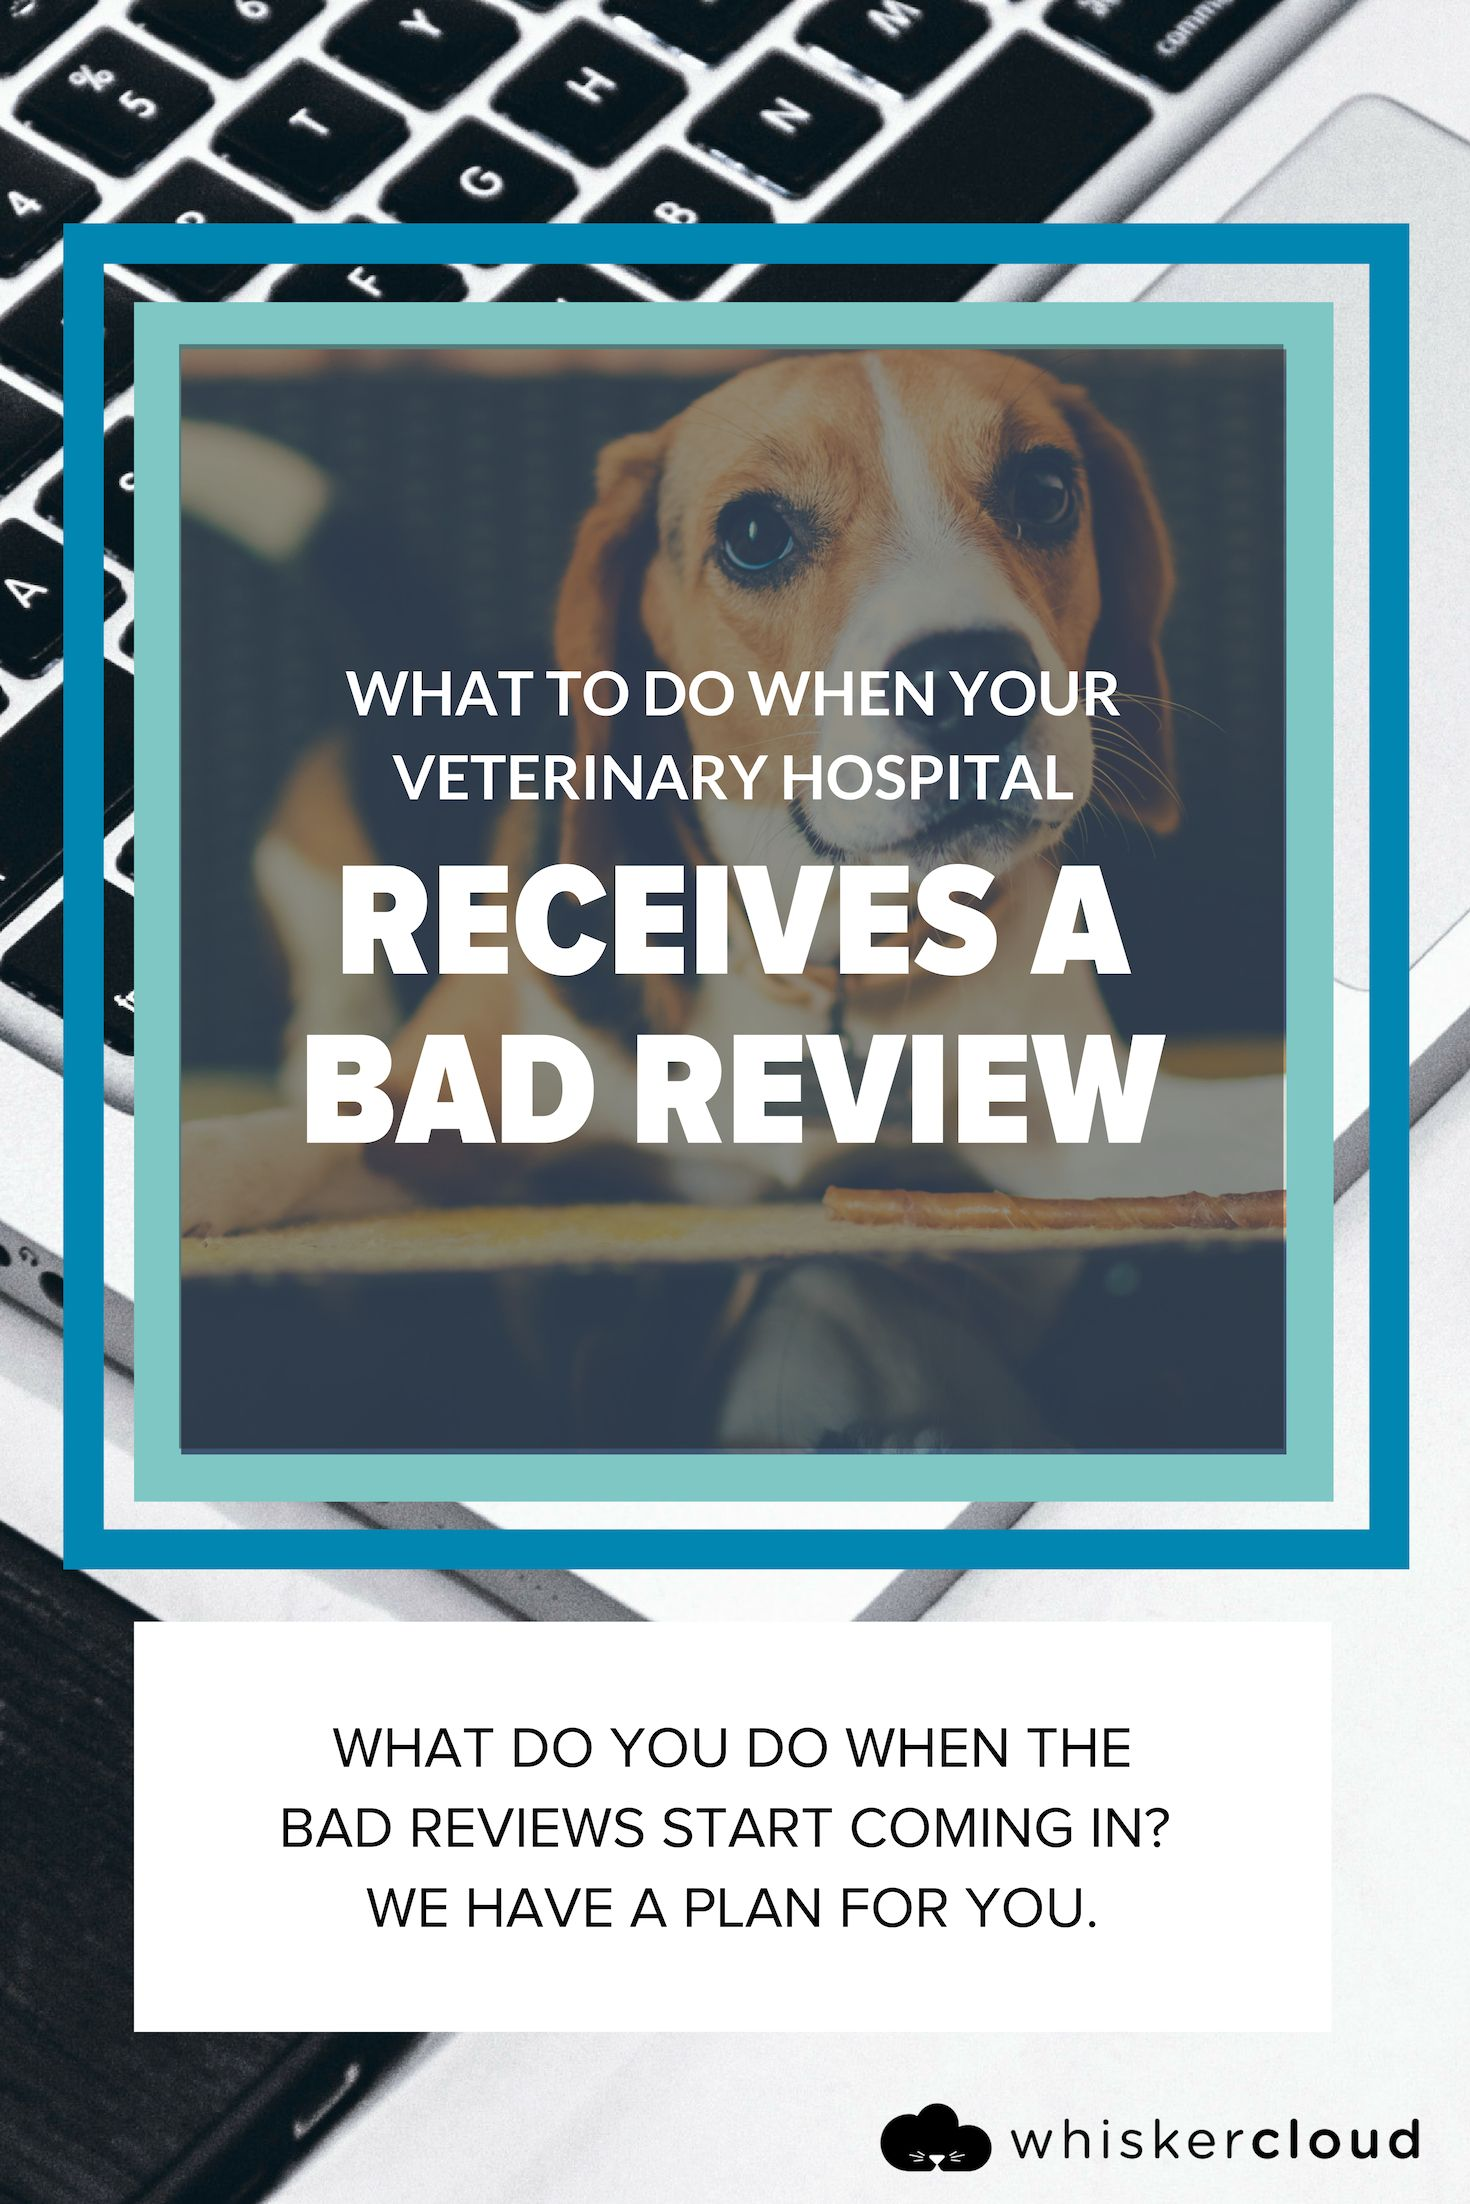 What To Do When Your Veterinary Hospital Gets A Bad Review